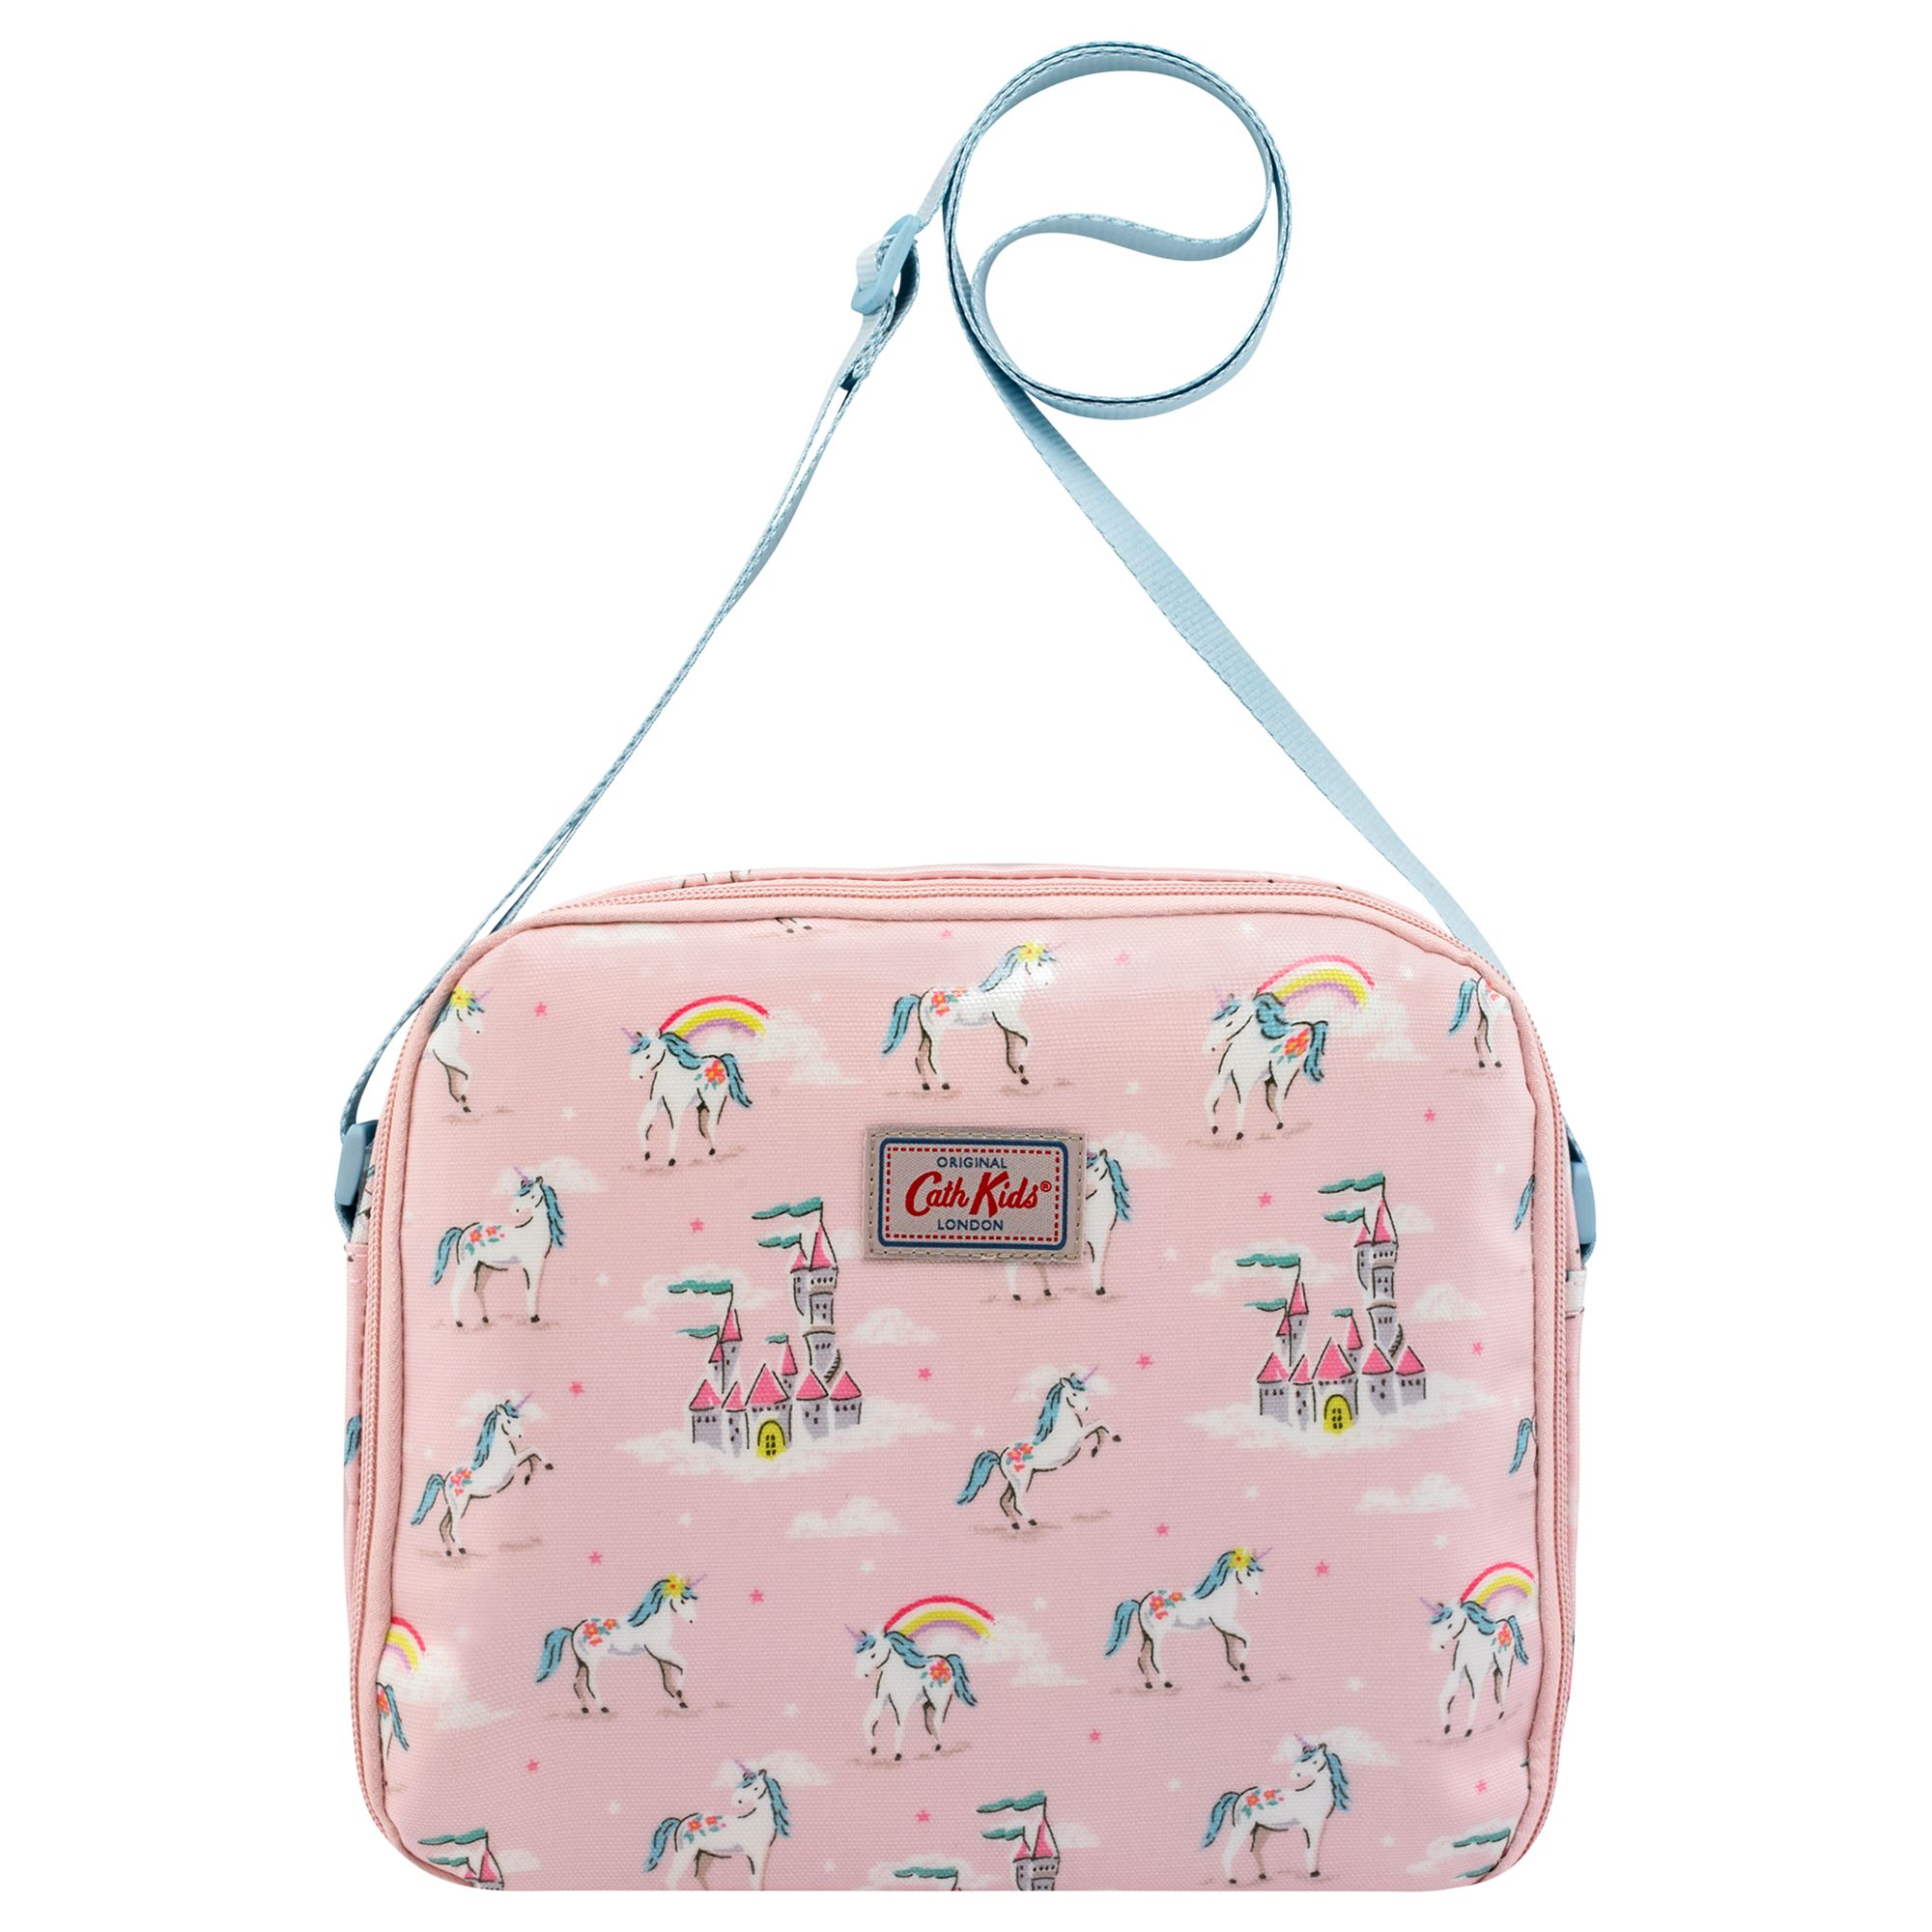 5cab1eaf52 Cath Kids Children's Unicorns And Rainbows Lunch Bag, Pink at John Lewis &  Partners